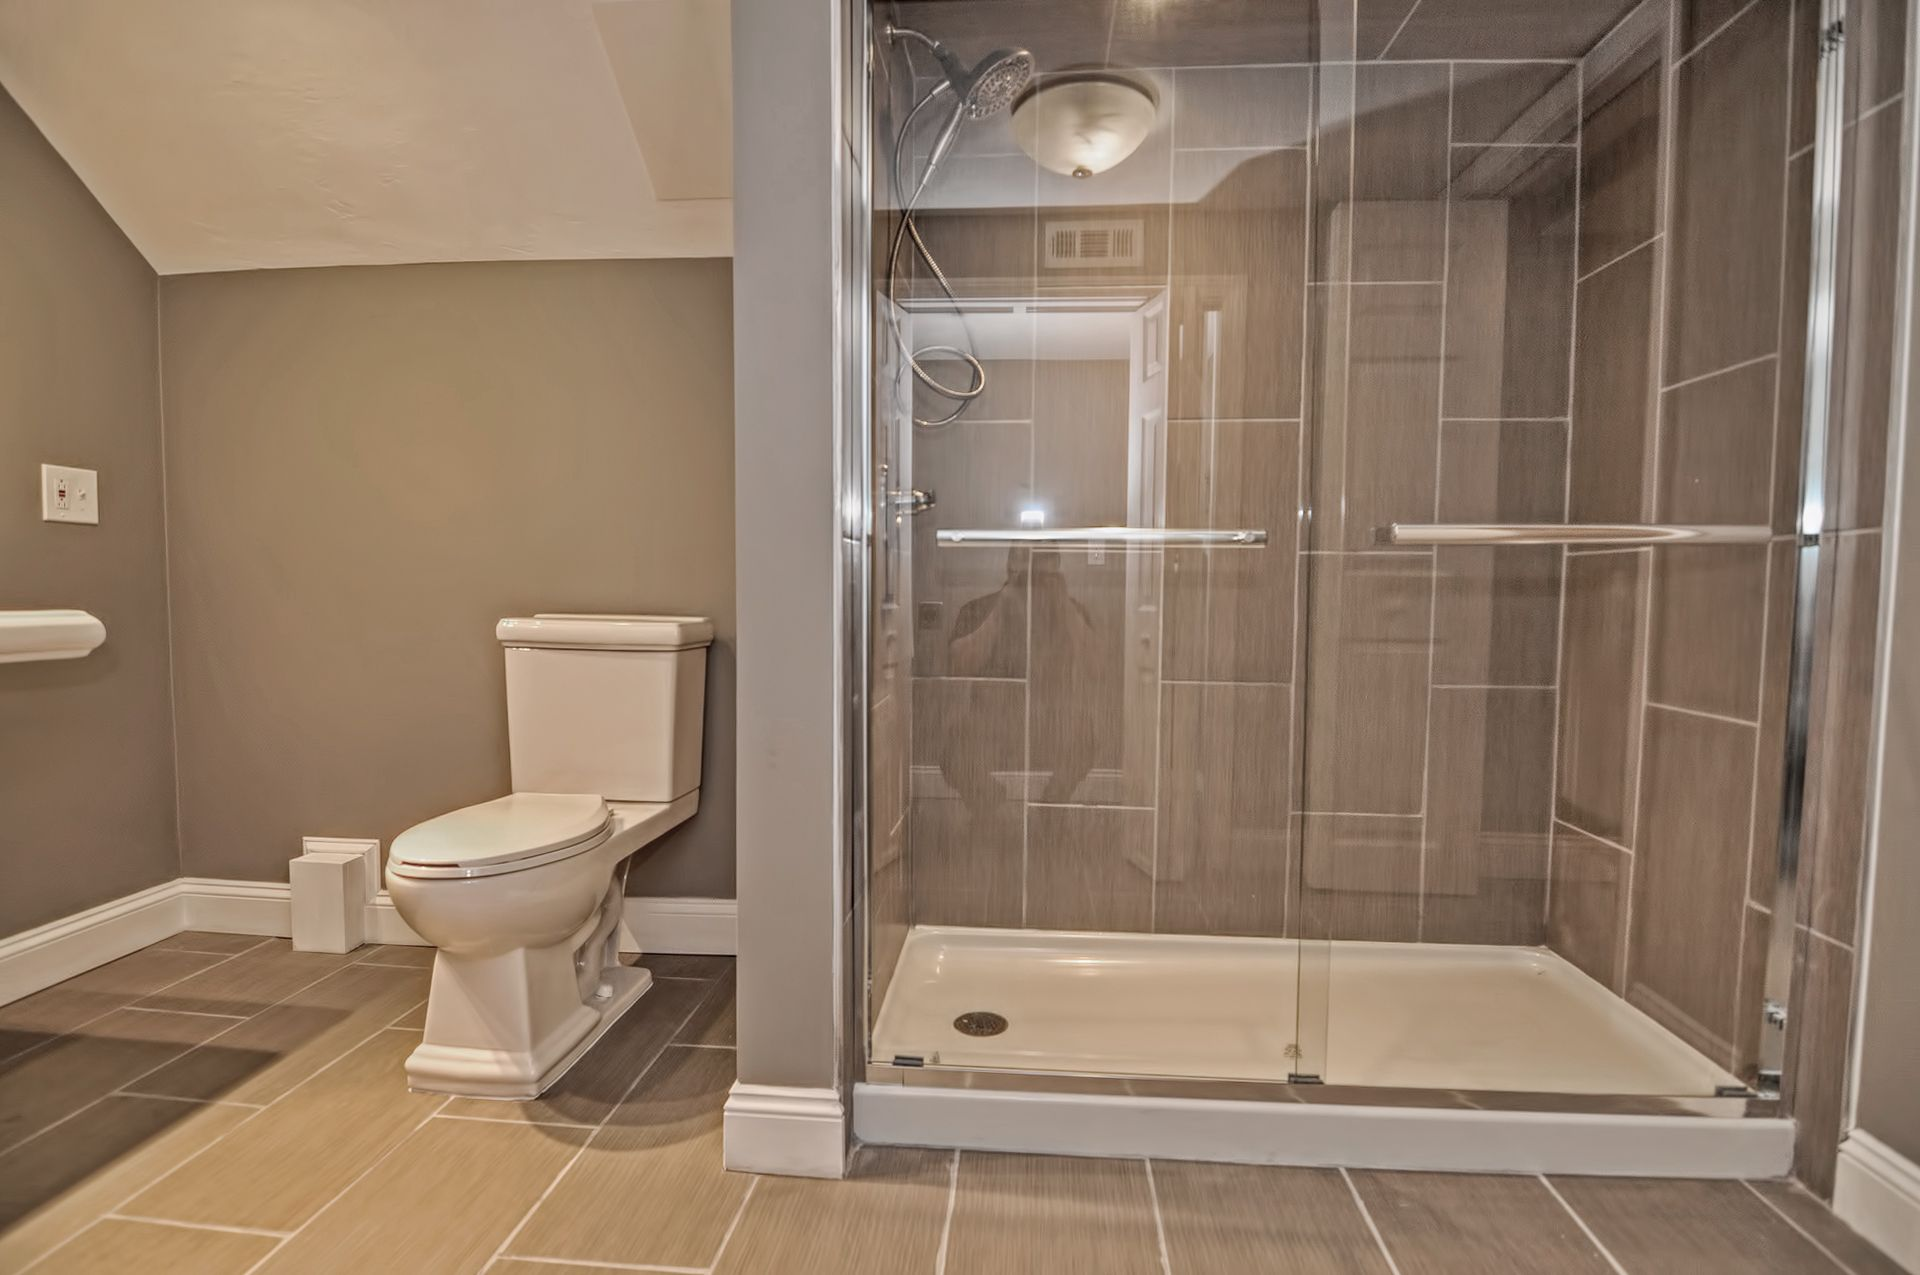 Bathroom tile to ceiling - Stand Up Shower Floor To Ceiling Tile Gray And White Bathroom